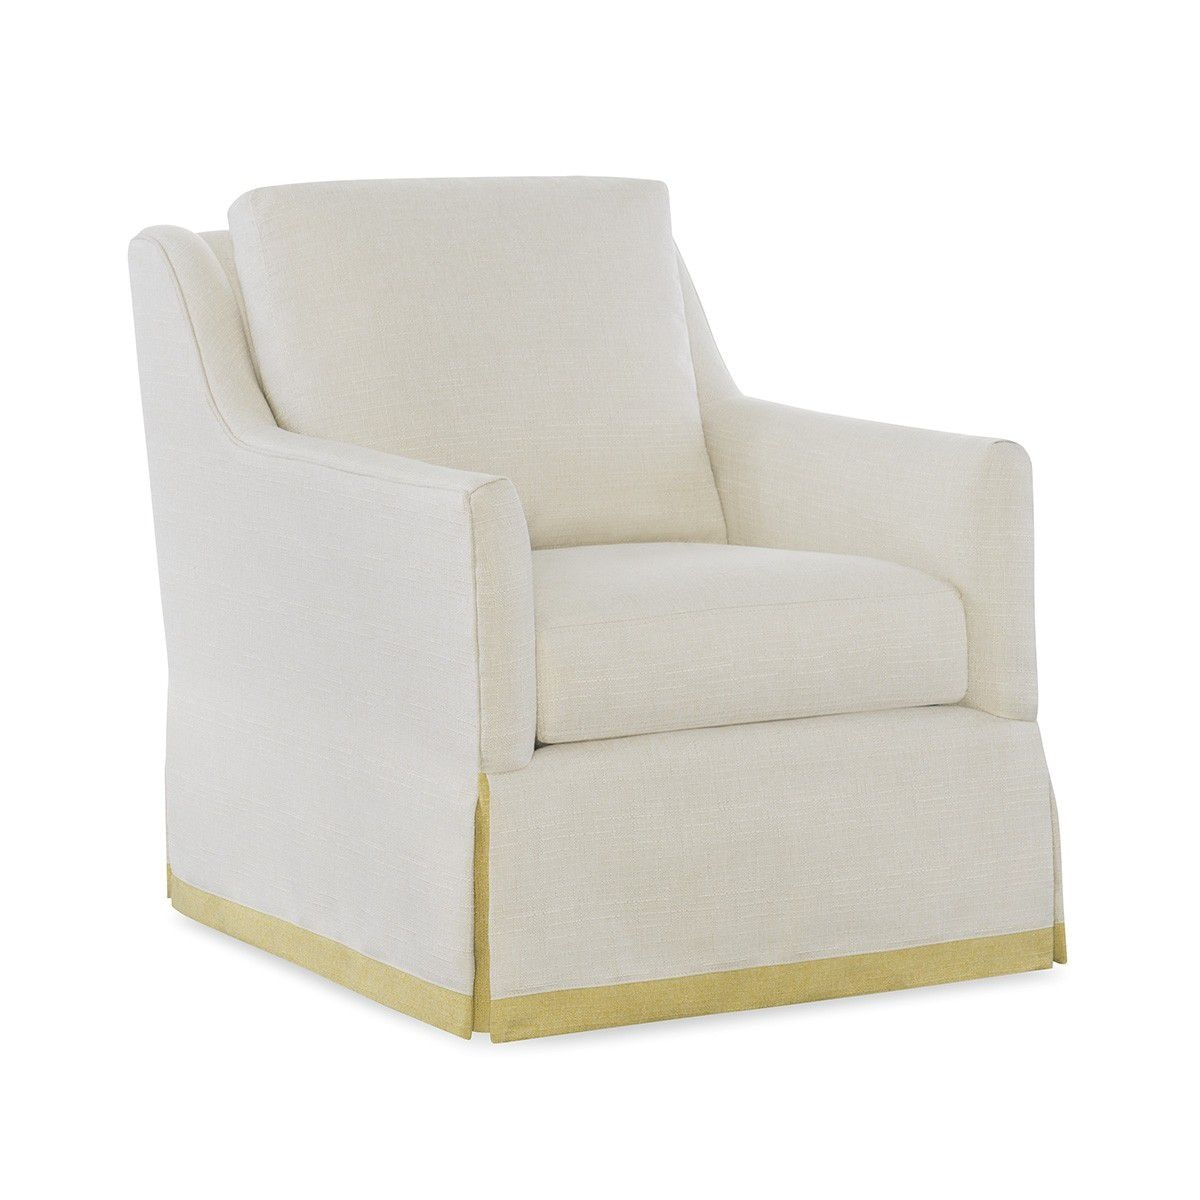 swivel chair in living room office without wheels cr laine 2586 05sw bacons furniture at